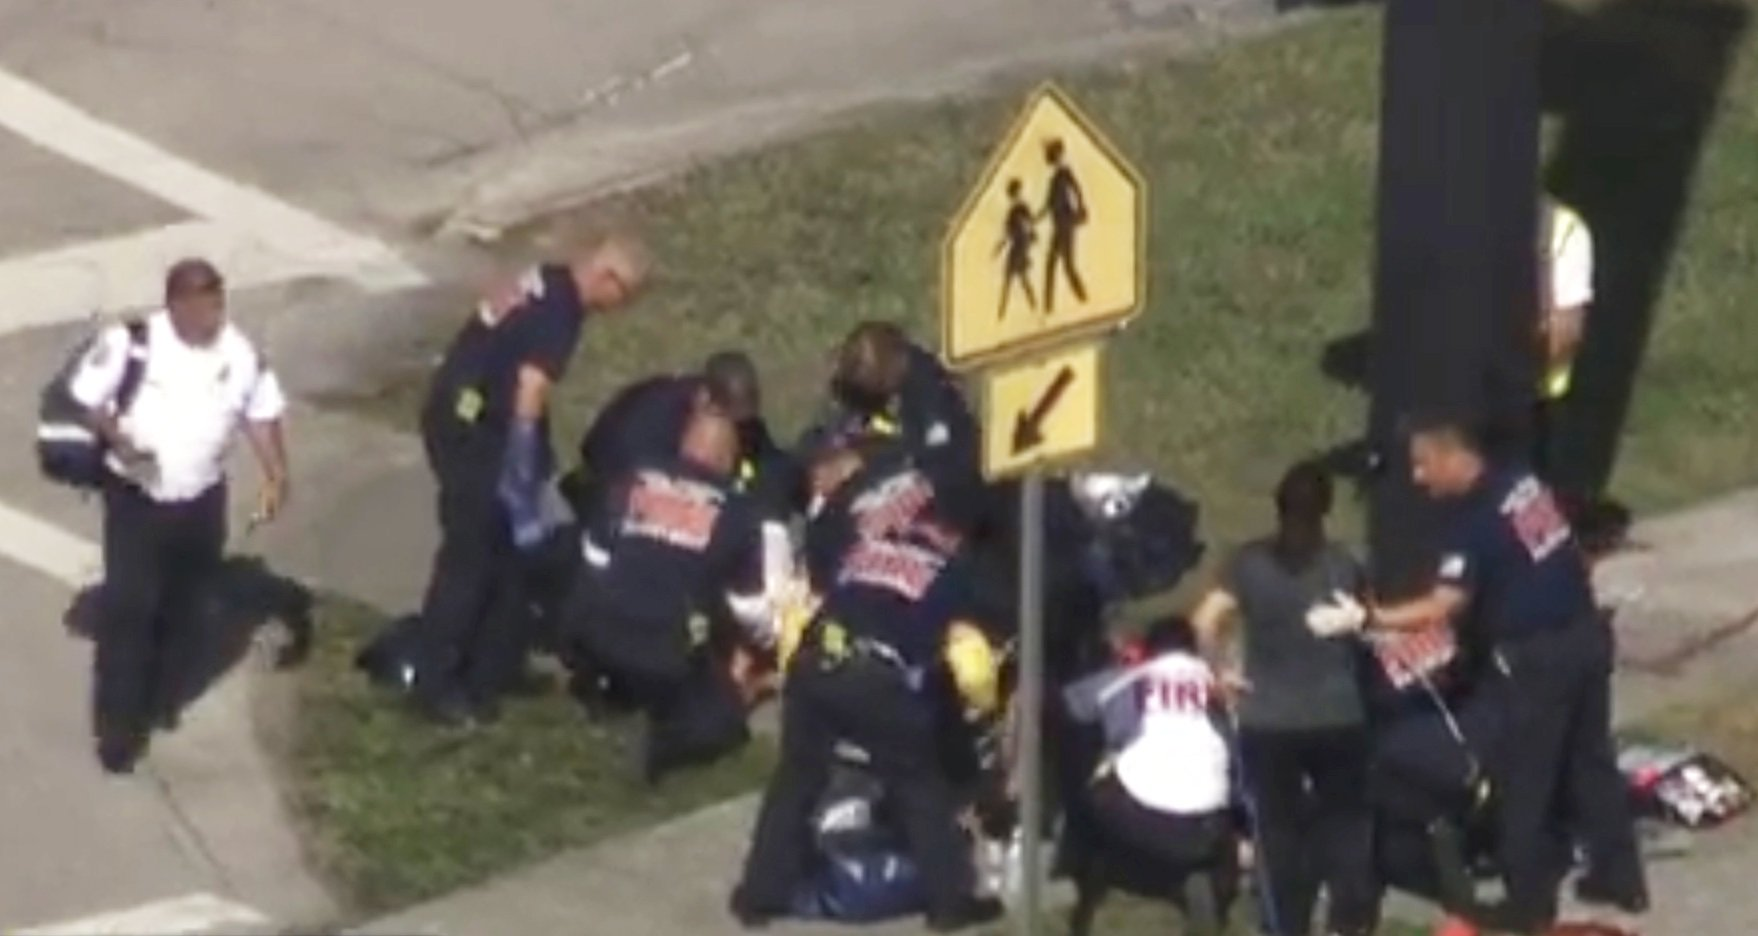 Rescue workers deal with a victim near Marjory Stoneman Douglas High School during a shooting incident in Parkland